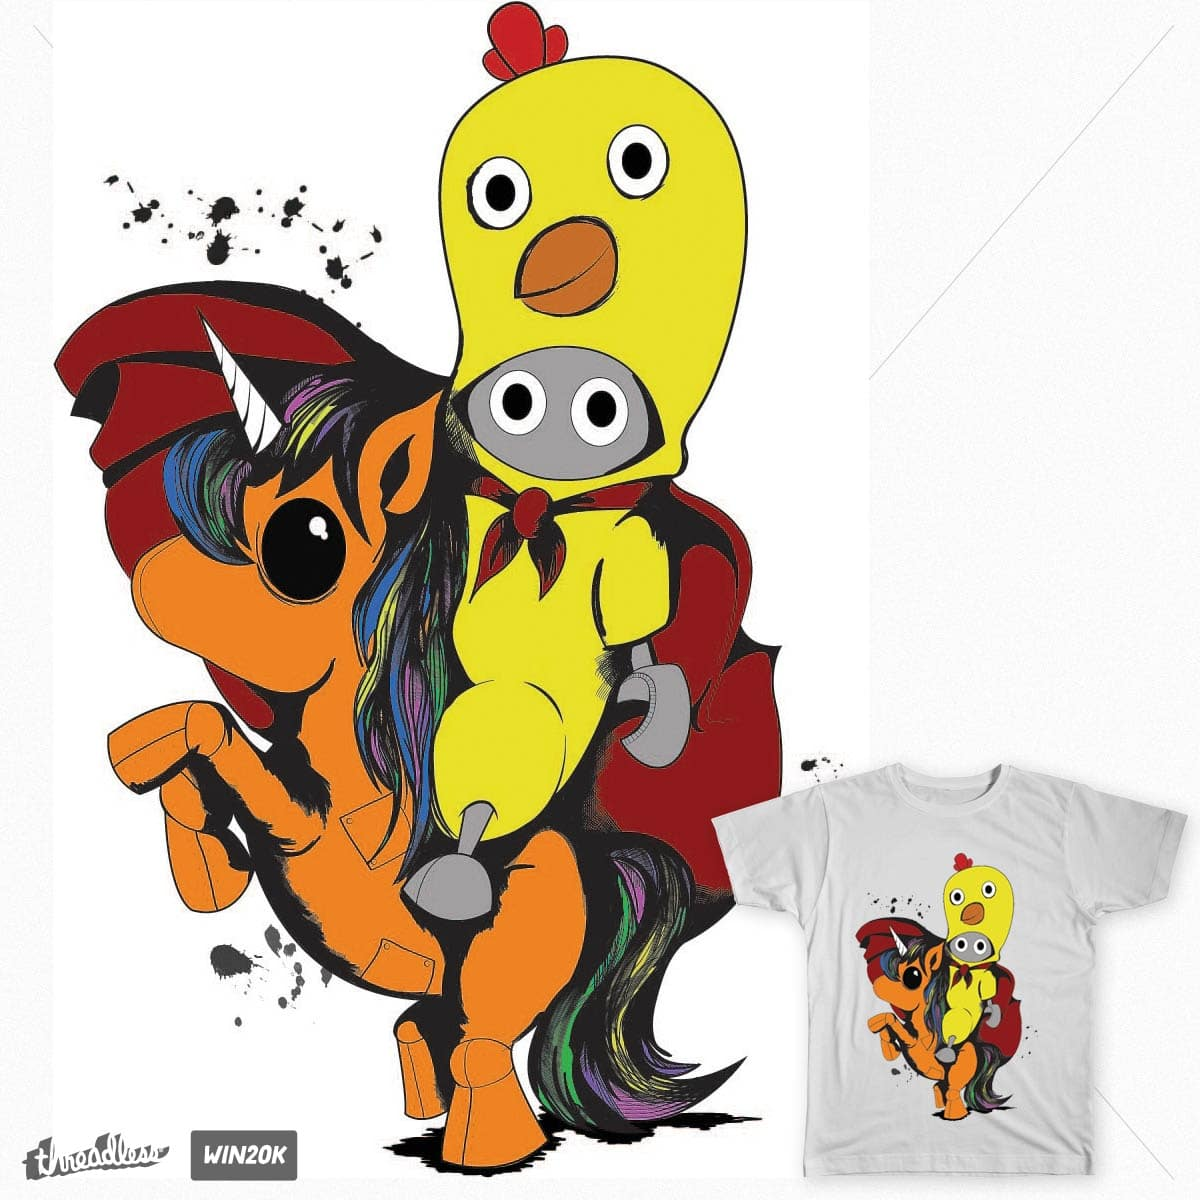 Cluck and the Unicorn by 2215 on Threadless